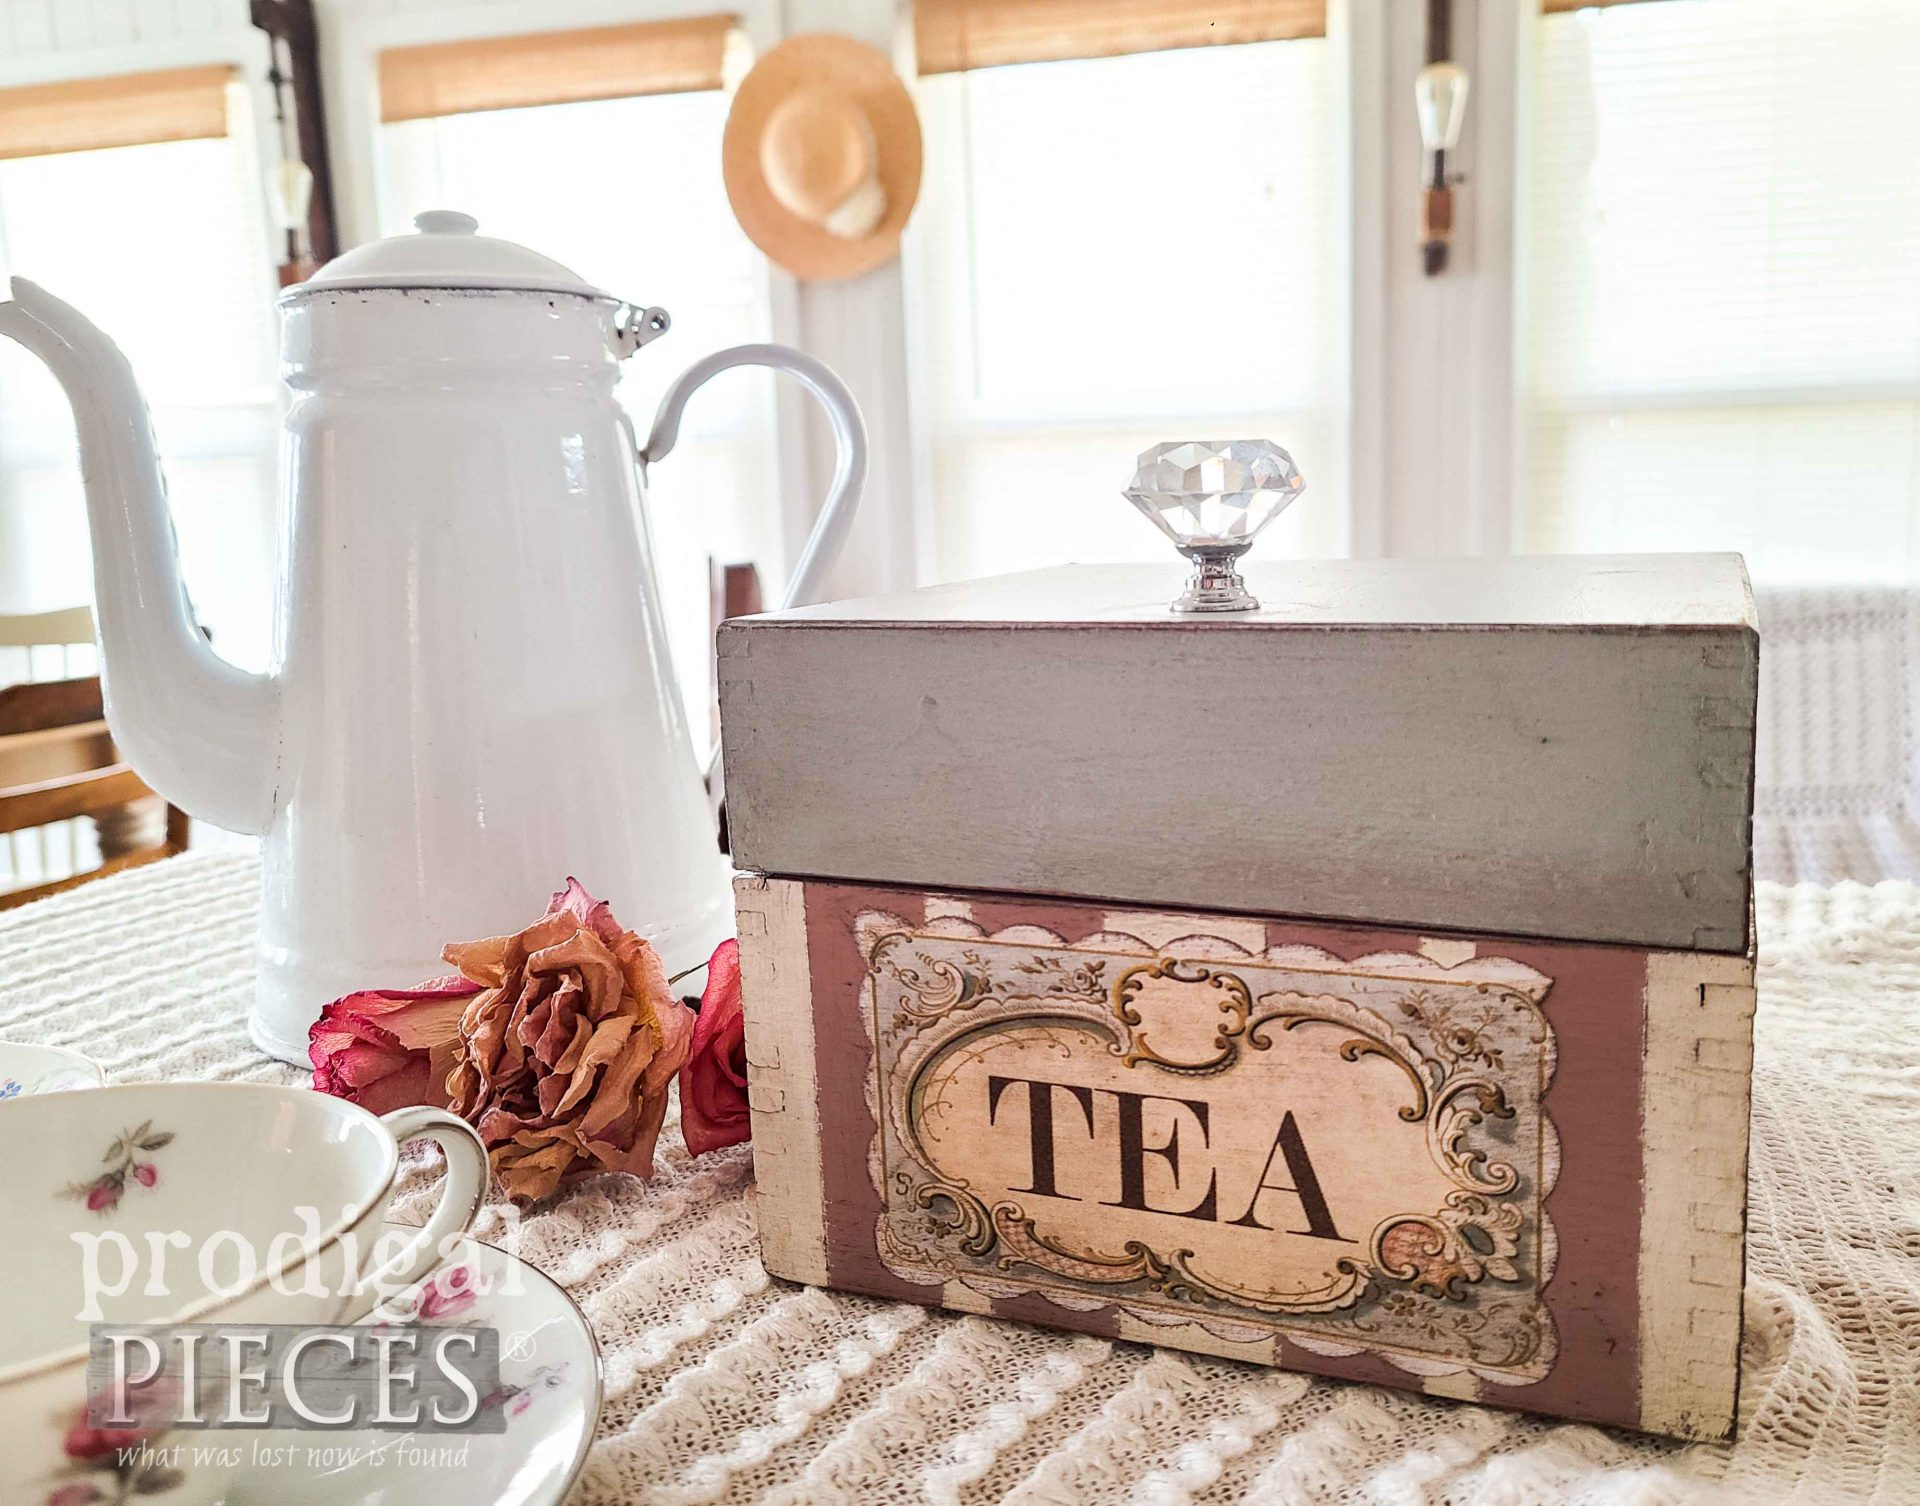 DIY Vintage Tea Box by Larissa of Prodigal Pieces | prodigalpieces.com #prodigalpieces #vintage #tea #home #homedecor